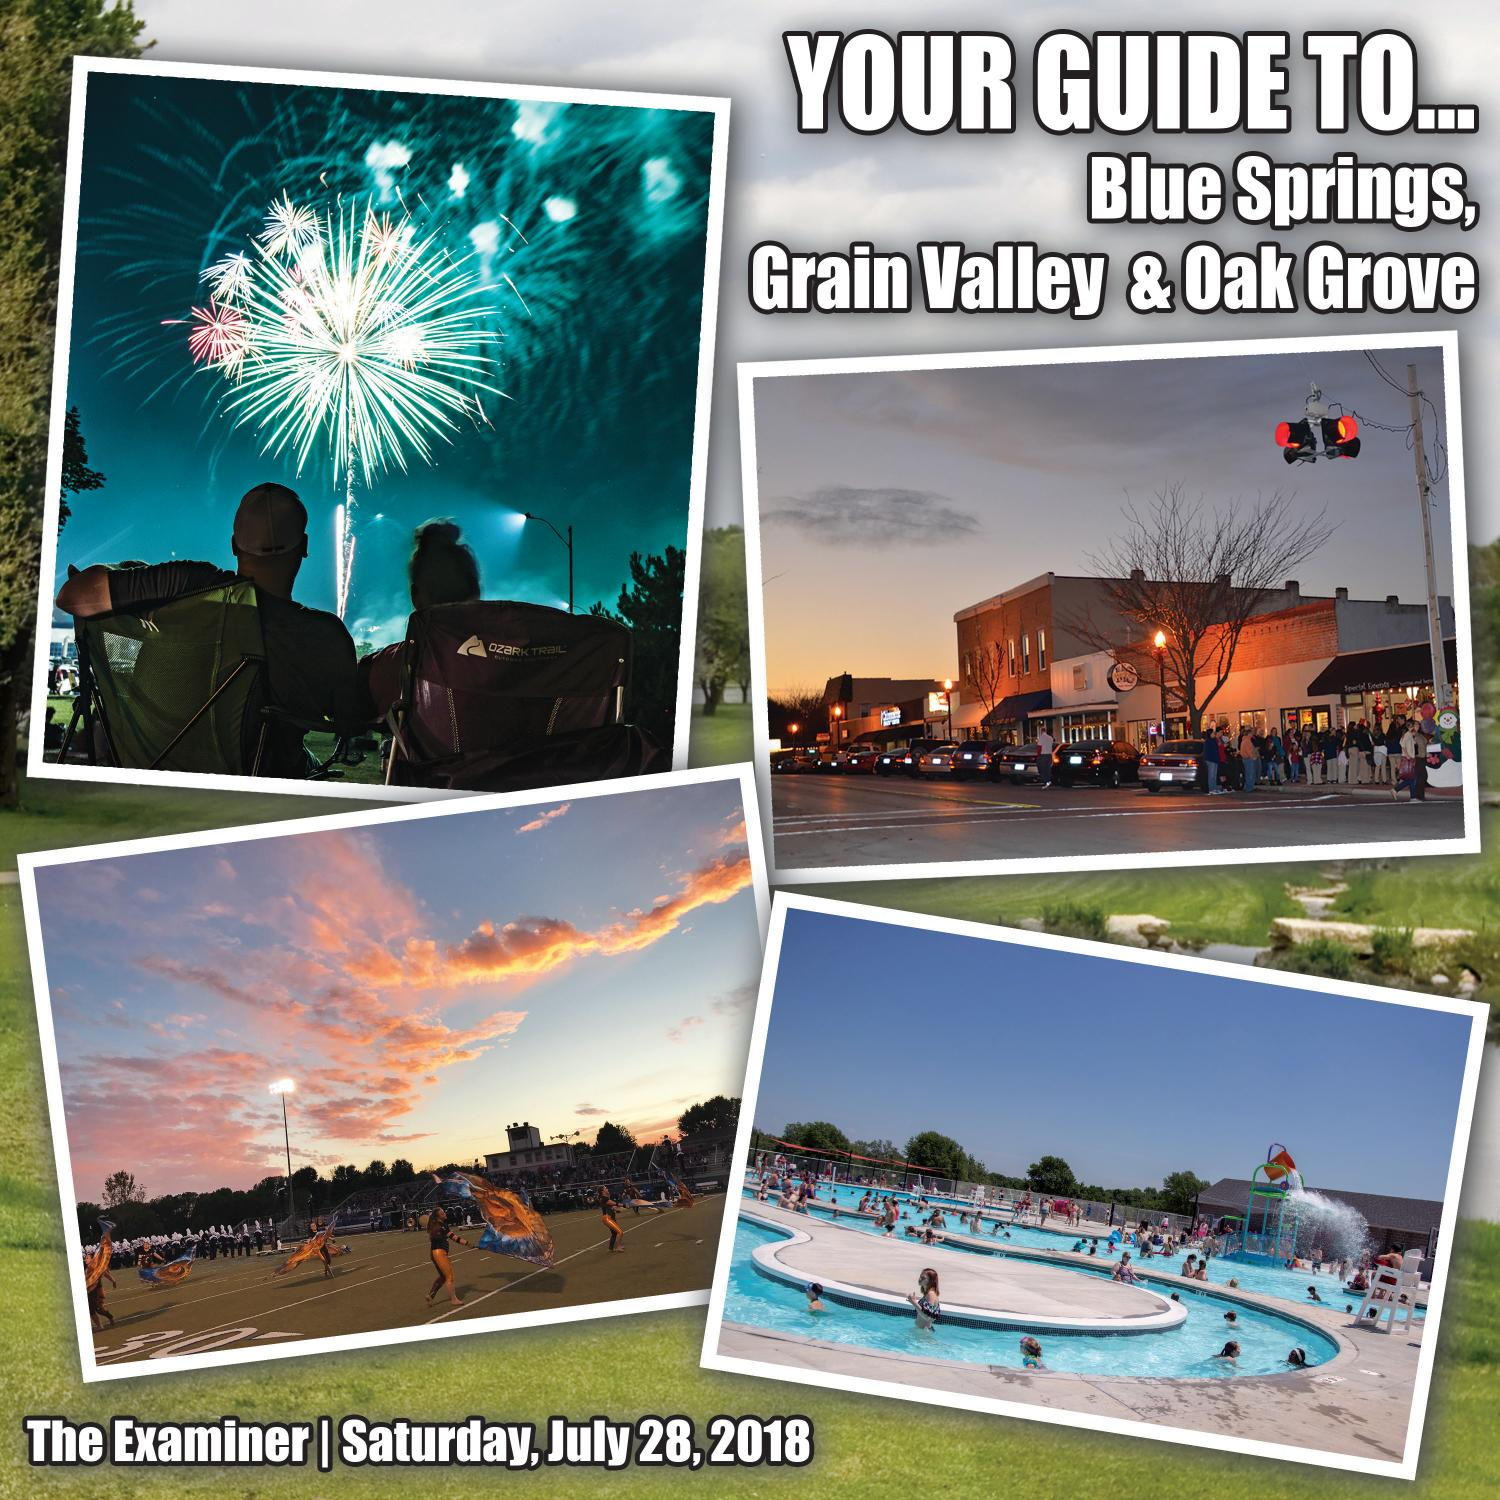 The Blue Springs Grain Valley & Oak Grove City Guide by The